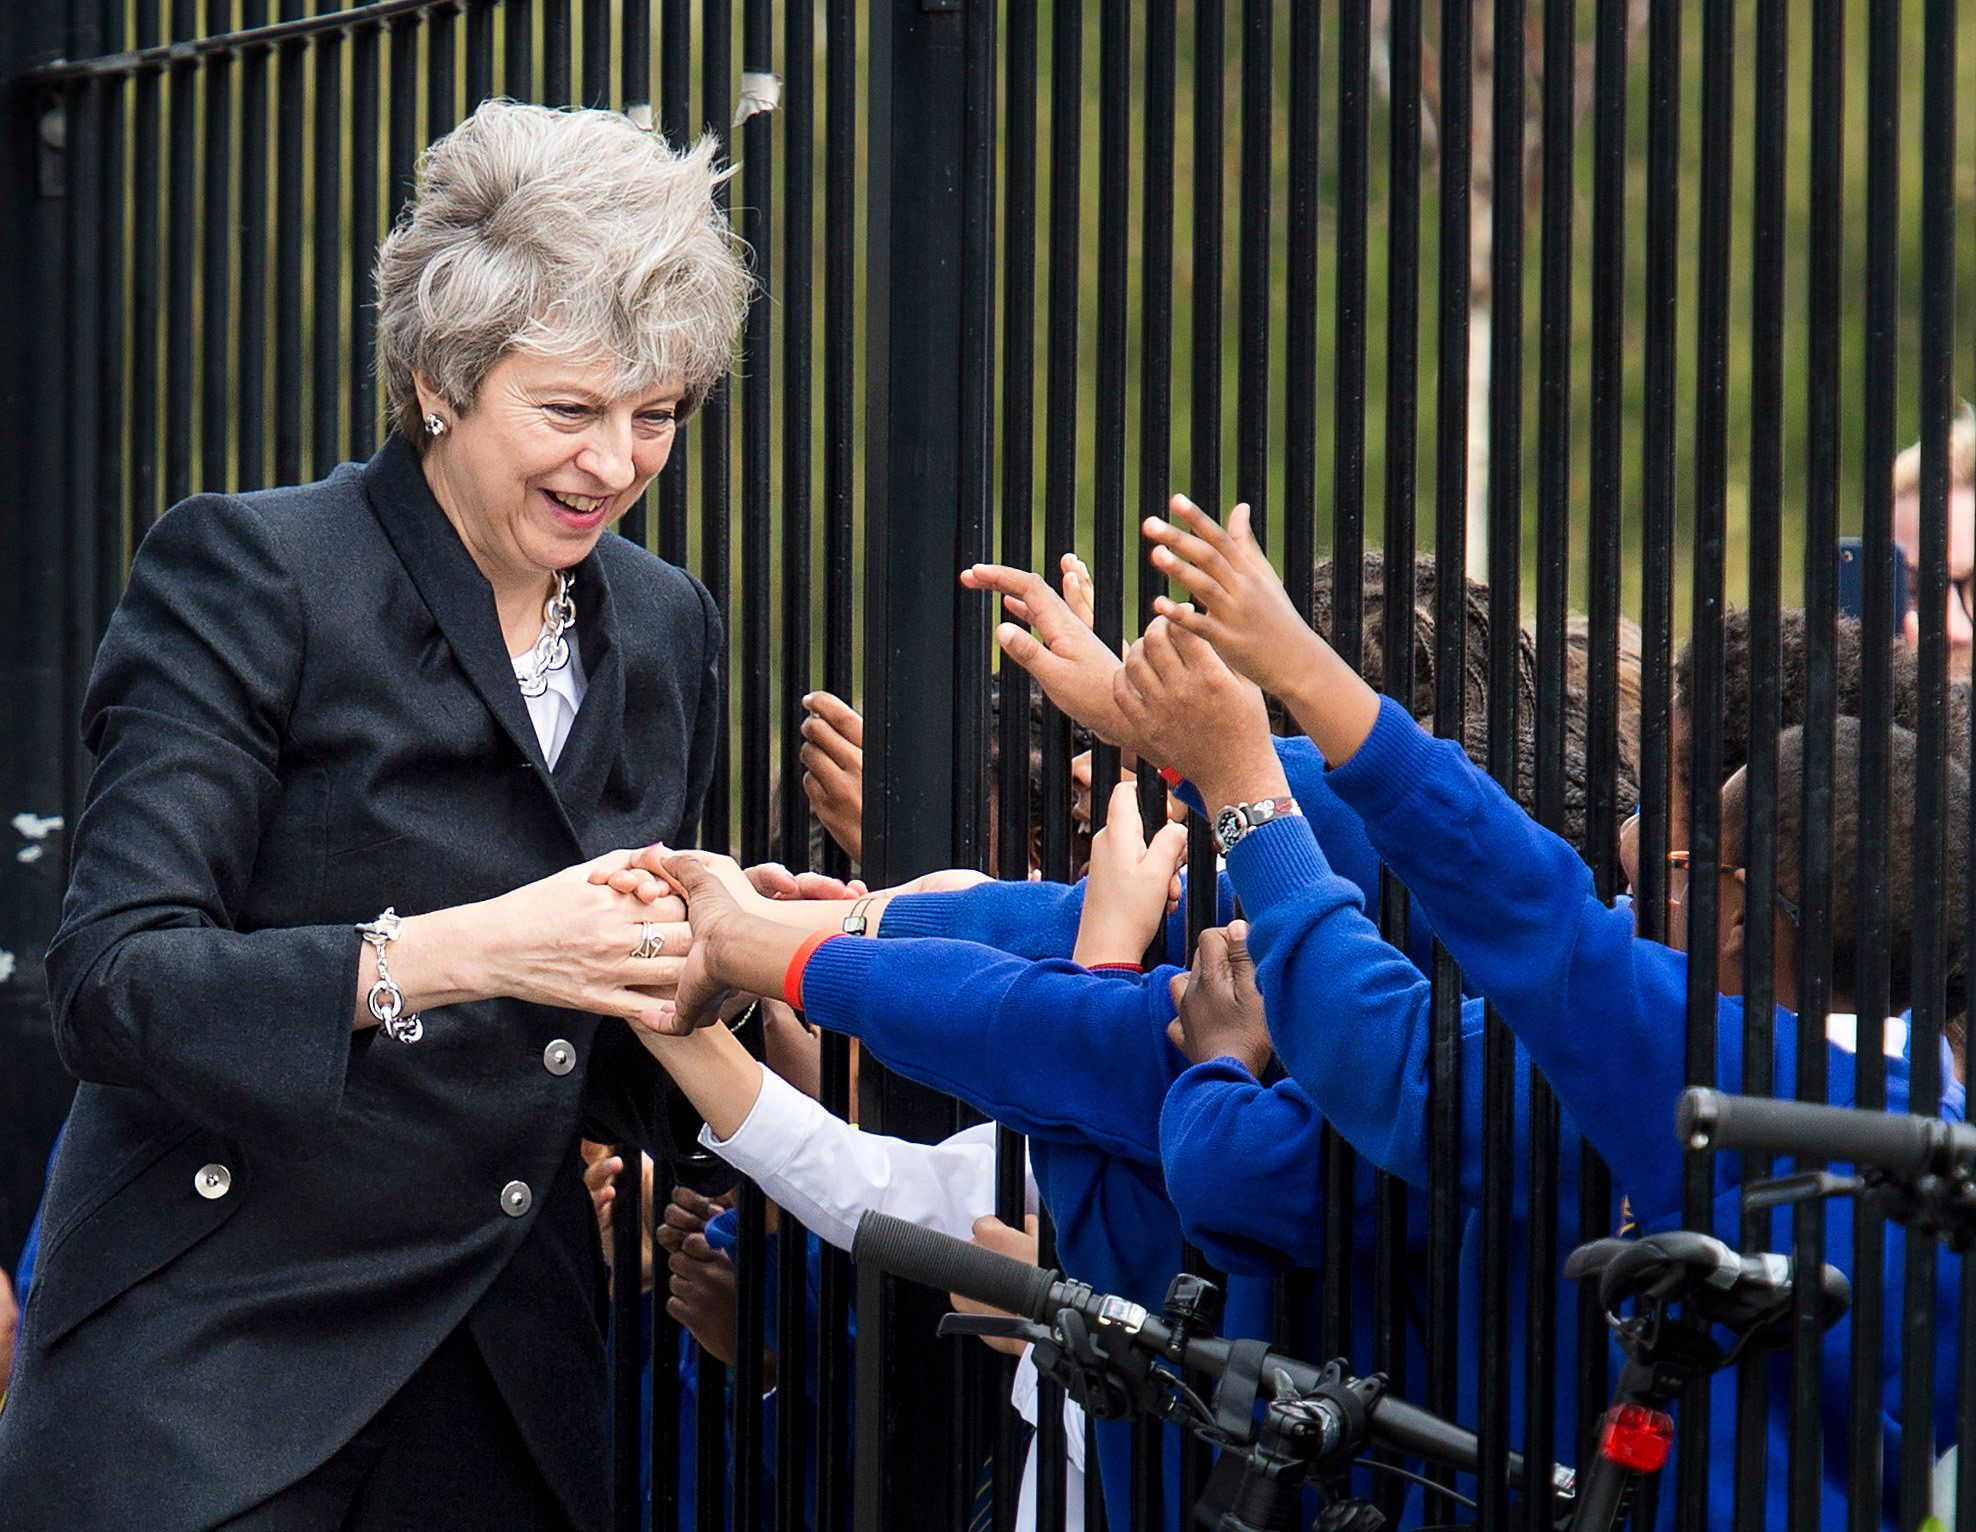 Seeking to relaunch social agenda, UK's May to address racial disparity